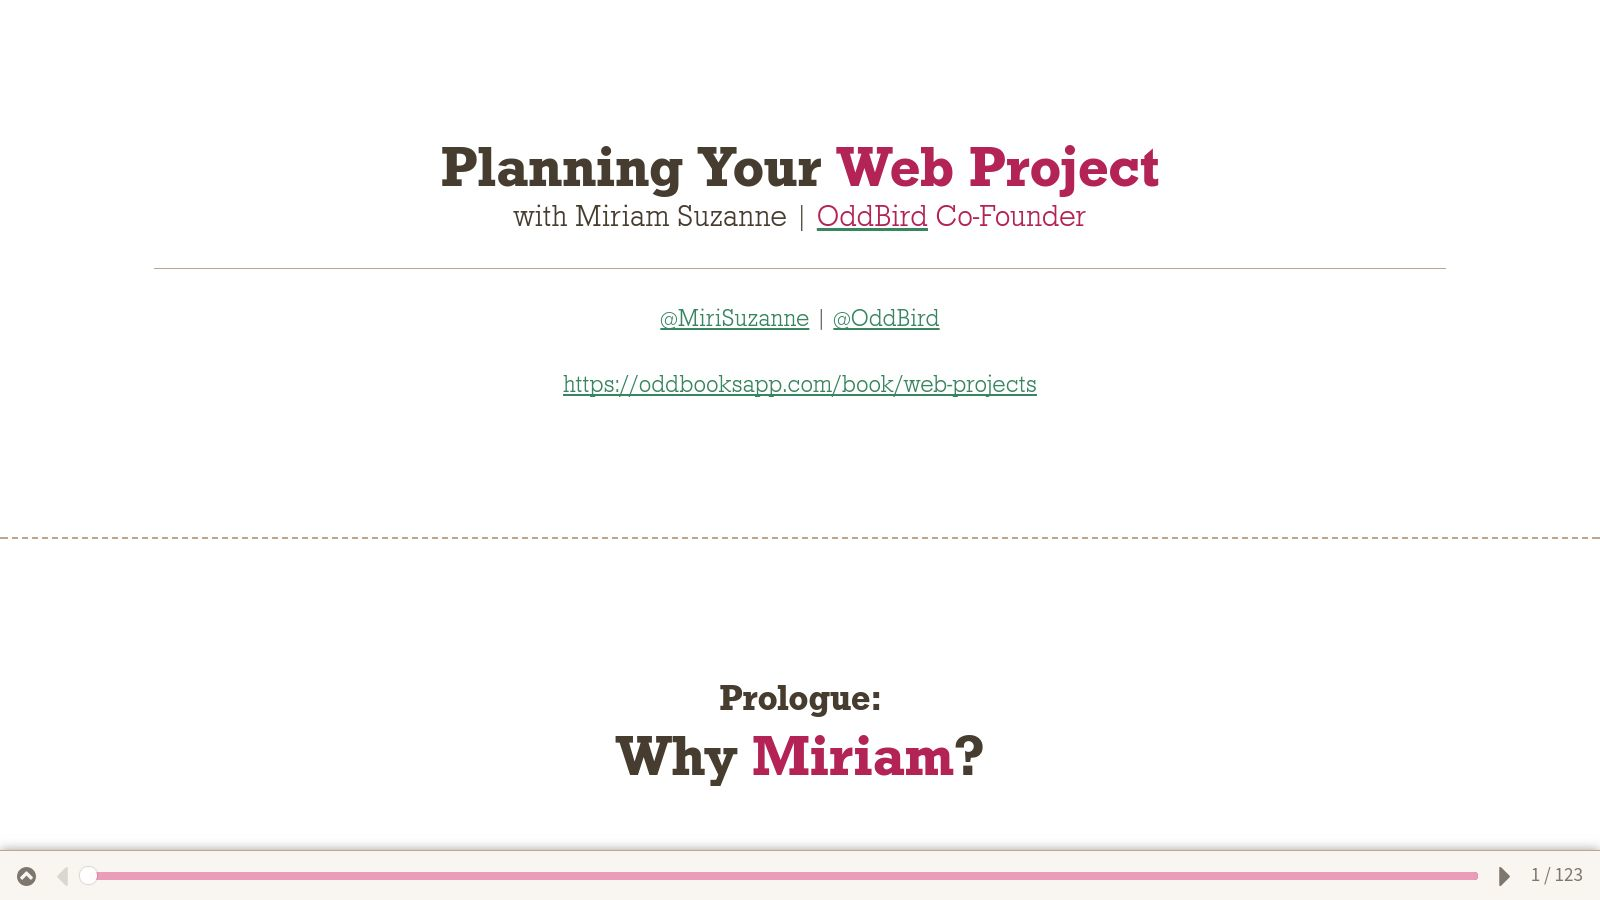 Planning Your Web Project by Miriam Suzanne